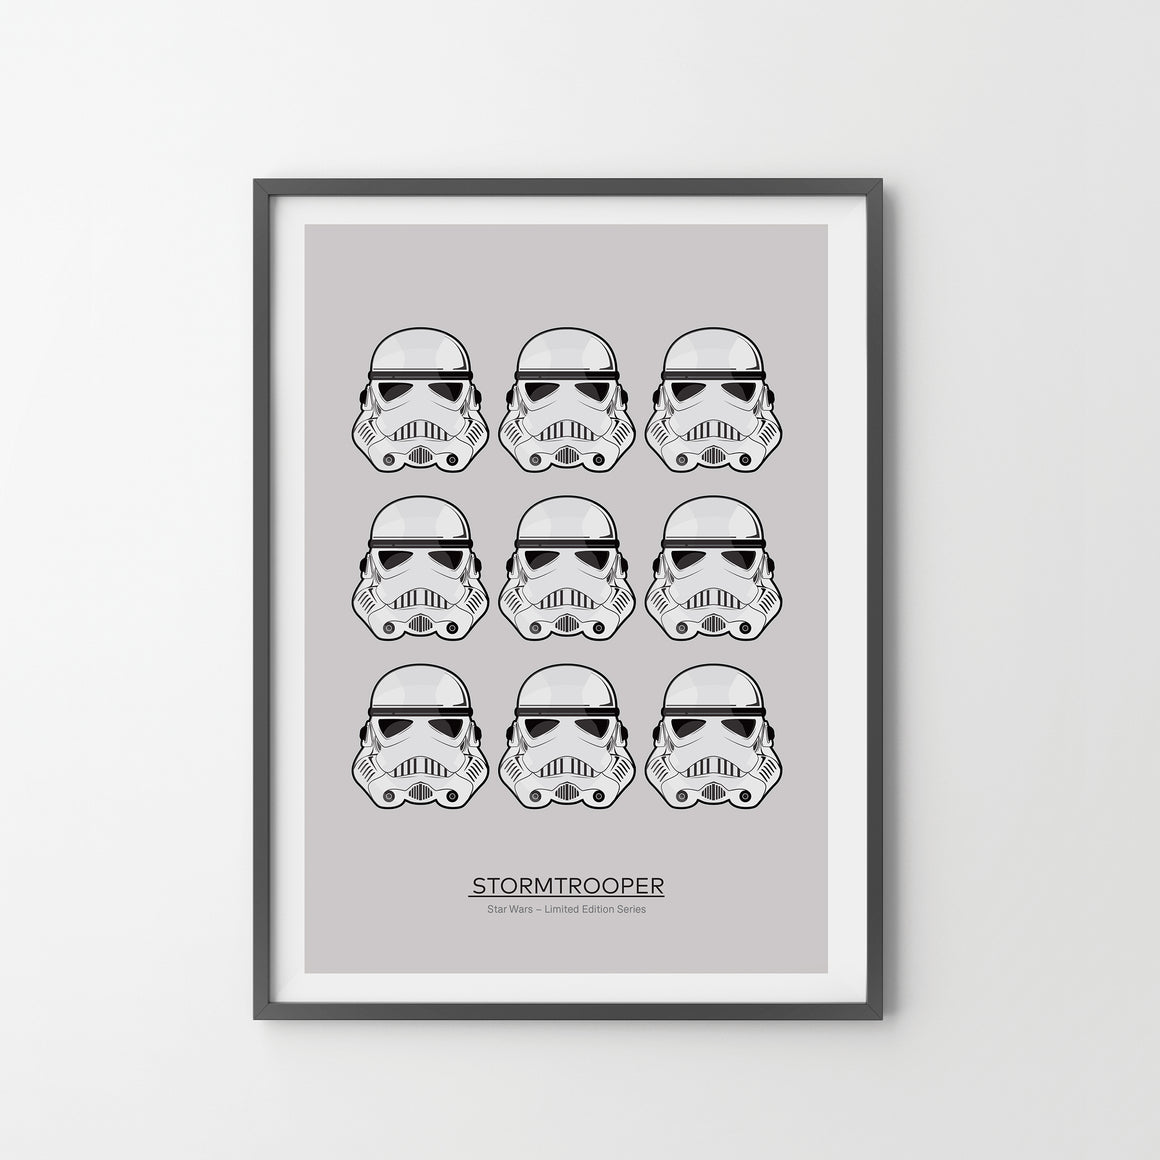 STAR WARS Stormtroopers 9 Giclée Art Poster Print Animation, Modern Office Bedroom Star Wars - SOA State of Art